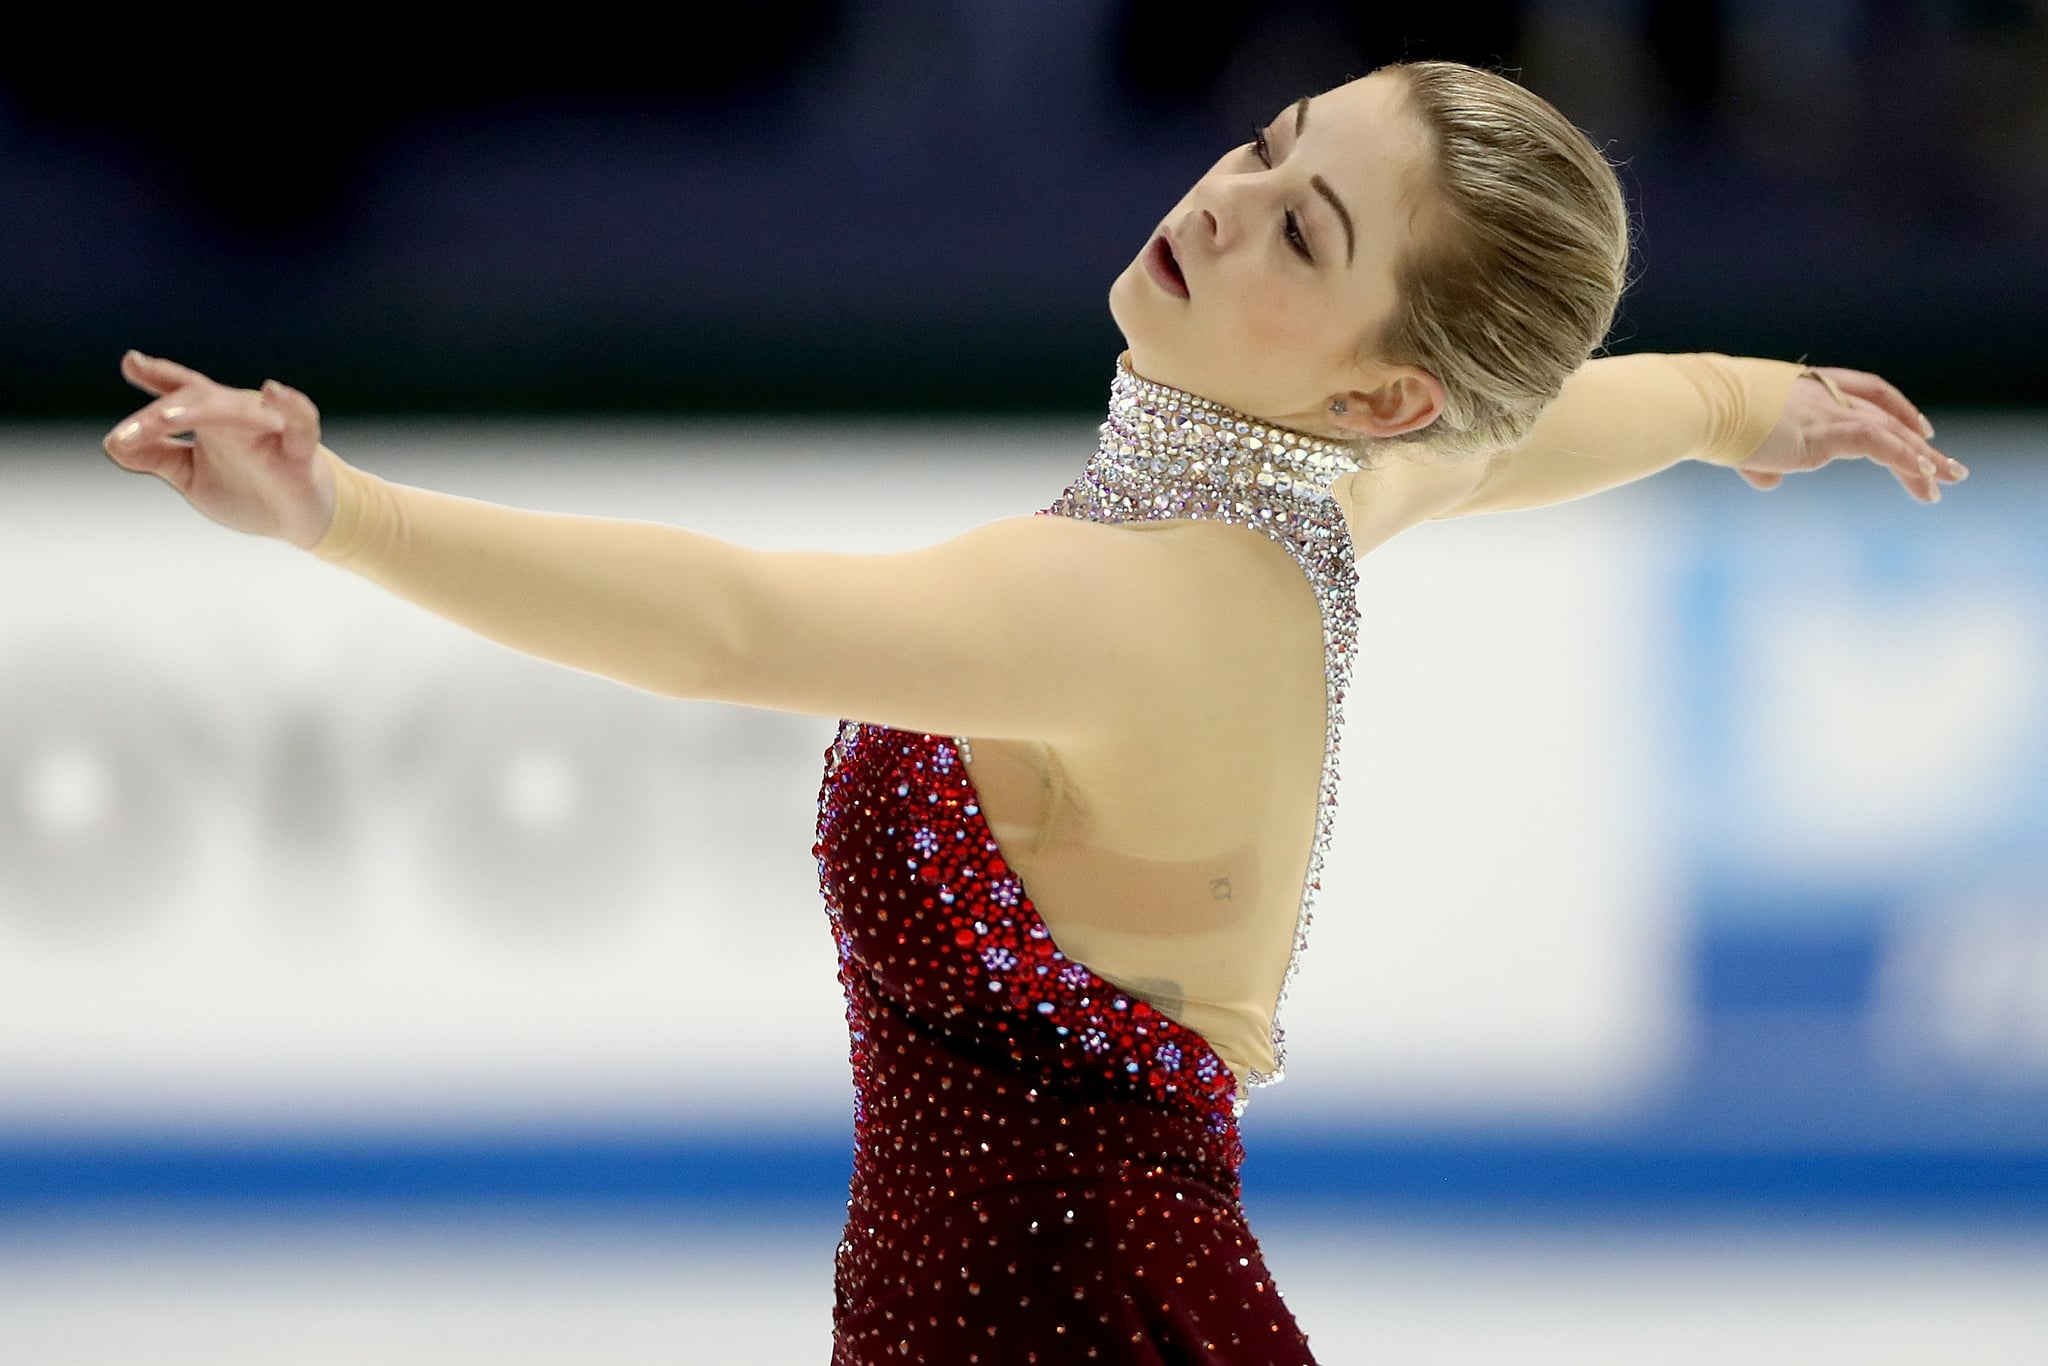 GREENSBORO, NORTH CAROLINA - JANUARY 24: Gracie Gold skates in the Ladies Free Skate during the 2020 U.S. Figure Skating Championships at Greensboro Coliseum on January 24, 2020 in Greensboro, North Carolina. (Photo by Matthew Stockman/Getty Images)